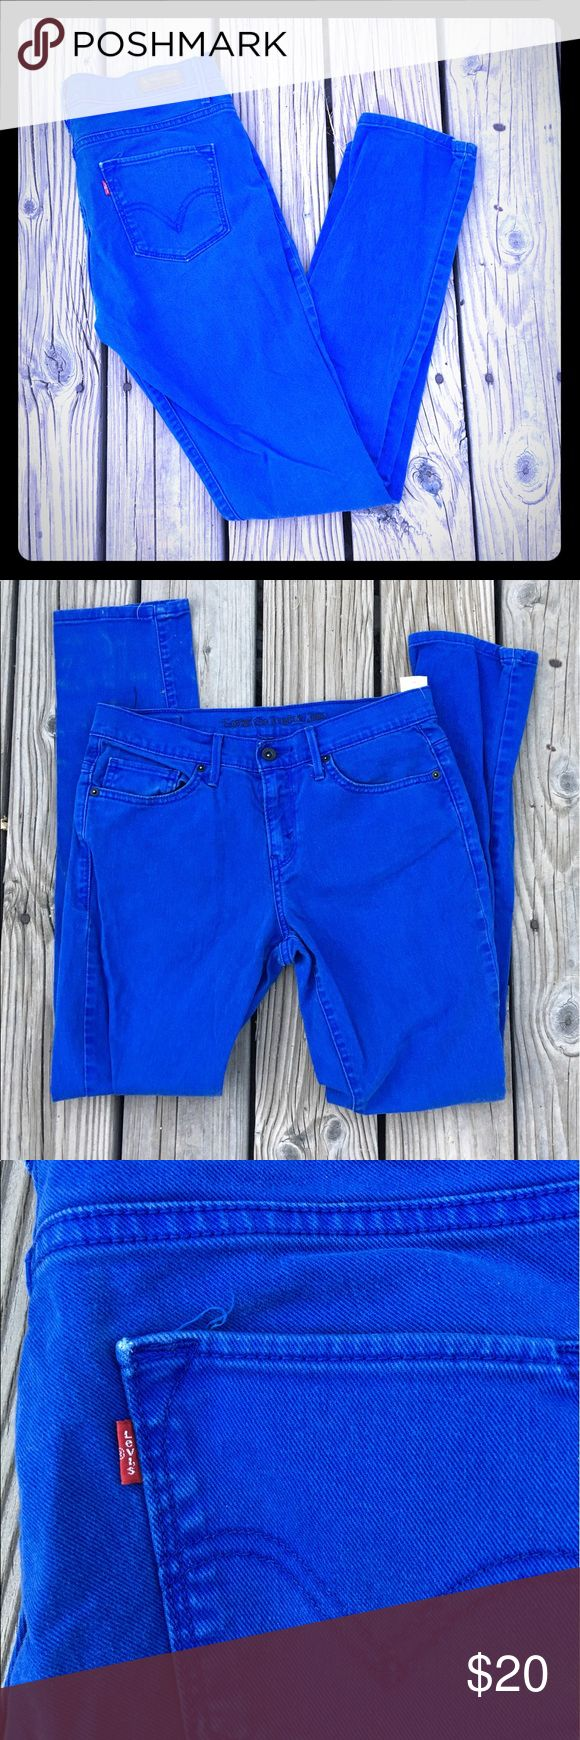 Women's royal blue Levi's skinny jeans. Women's hi rise 632 Levi's skinny jeans. Royal blue. Size 9/29. Preowned. Has worn look but these are fabulous on and the color is beautiful Levi's Jeans Skinny